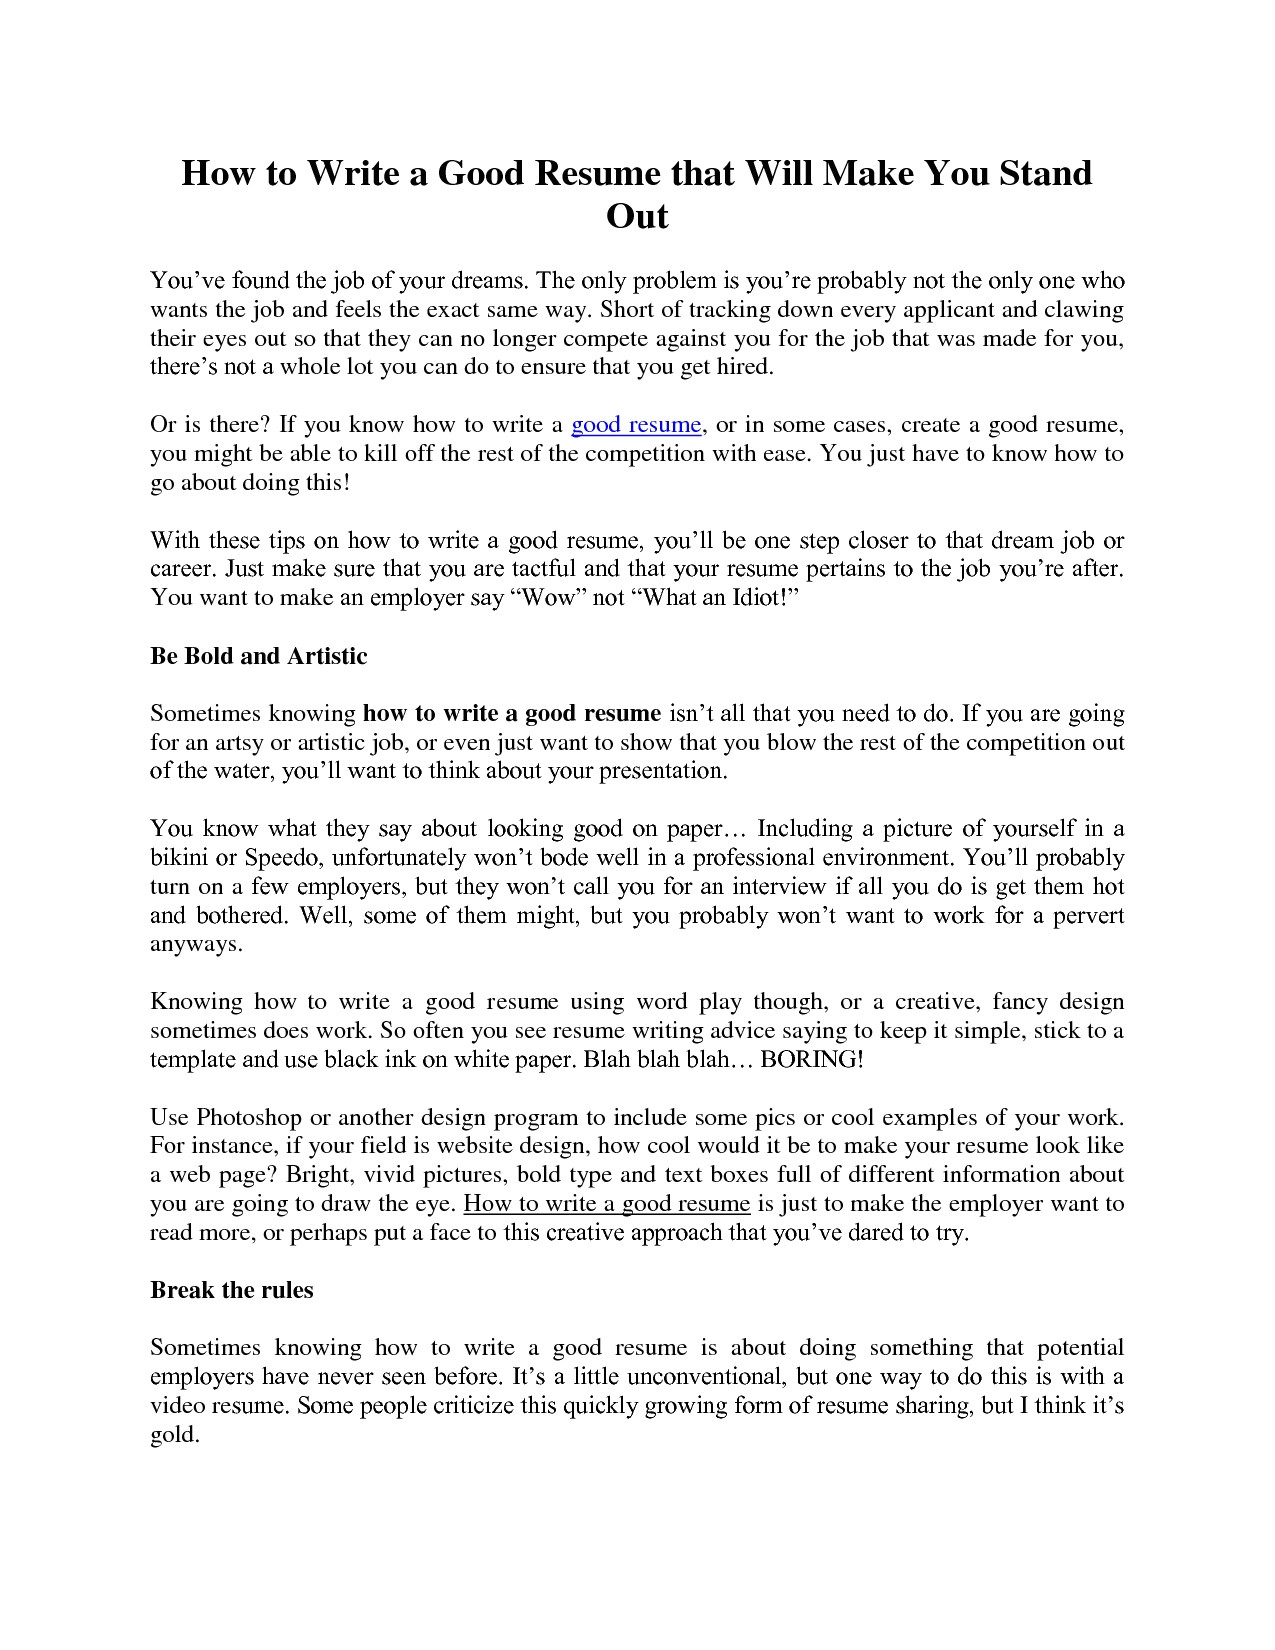 Good Words to Use In A Cover Letter Keys to A Good Resume Resume Phrases Cover Letter